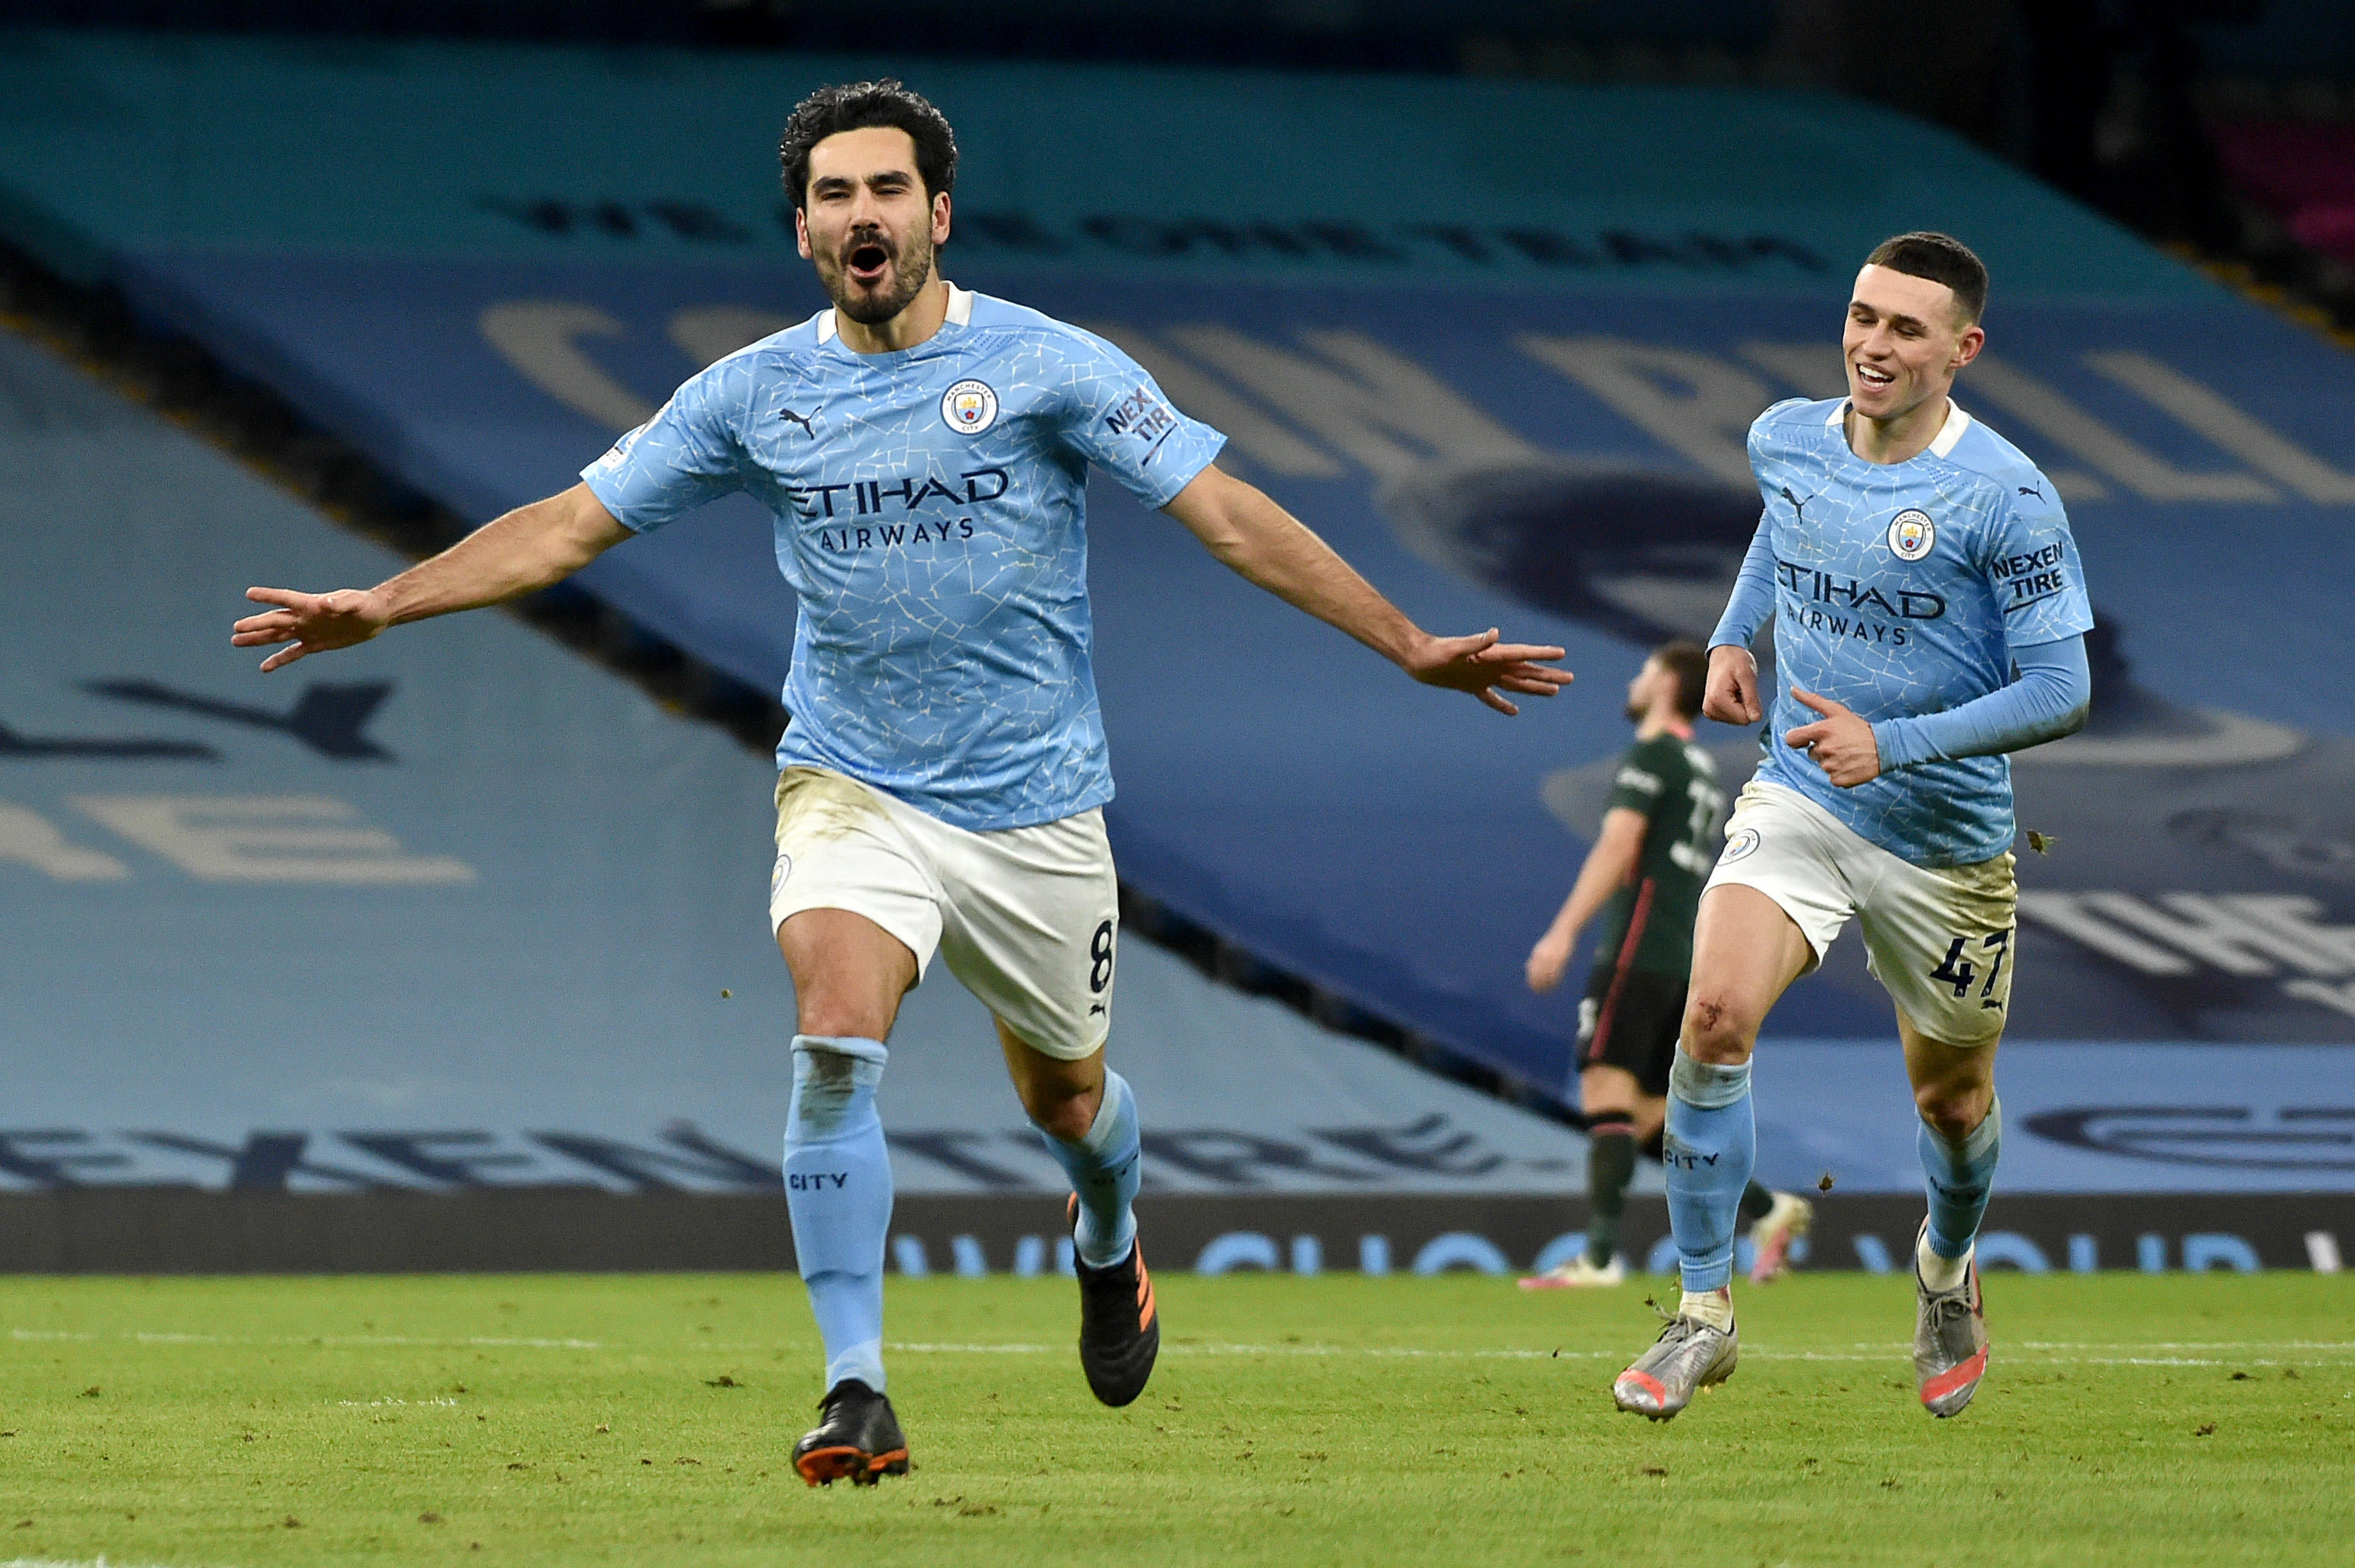 Weekend fixtures give Man City chance to extend lead